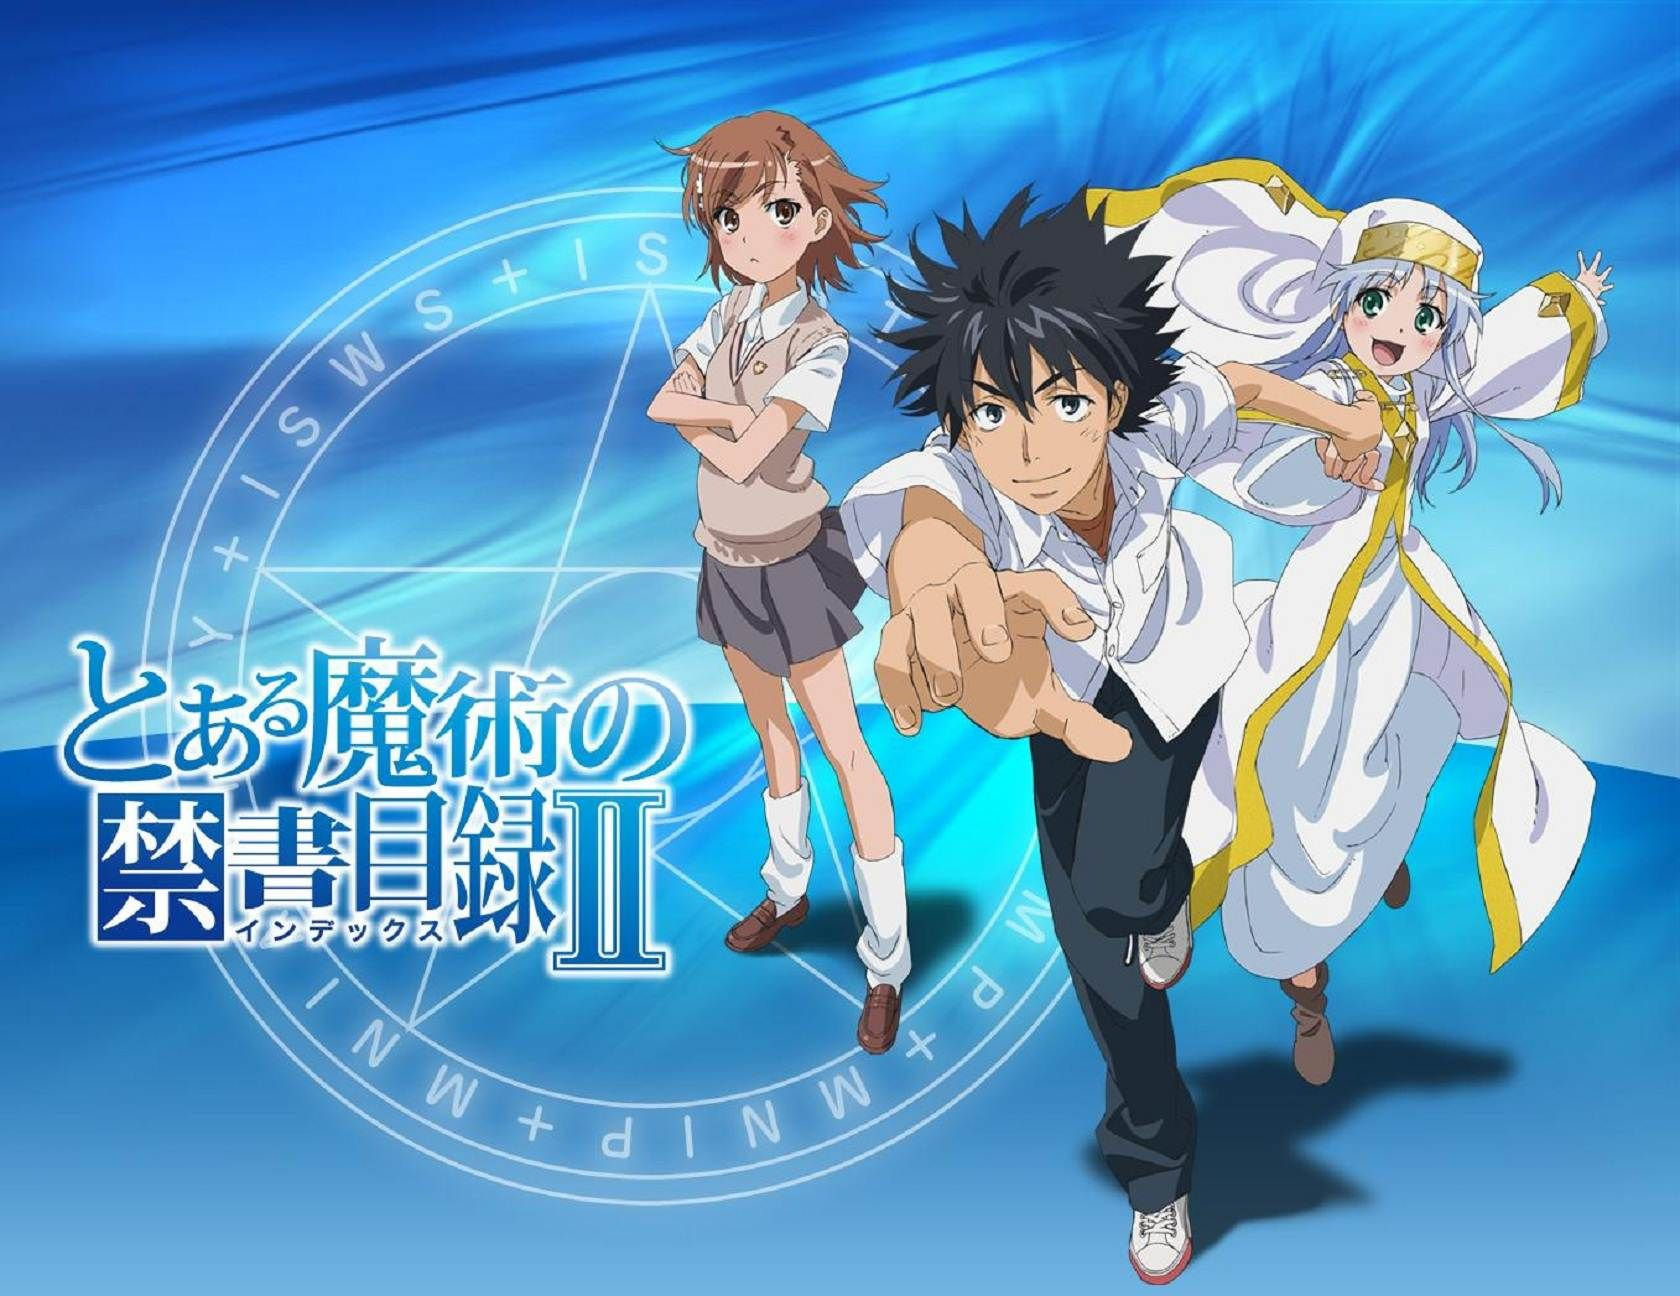 Magical index Anime english dubbed, A certain magical